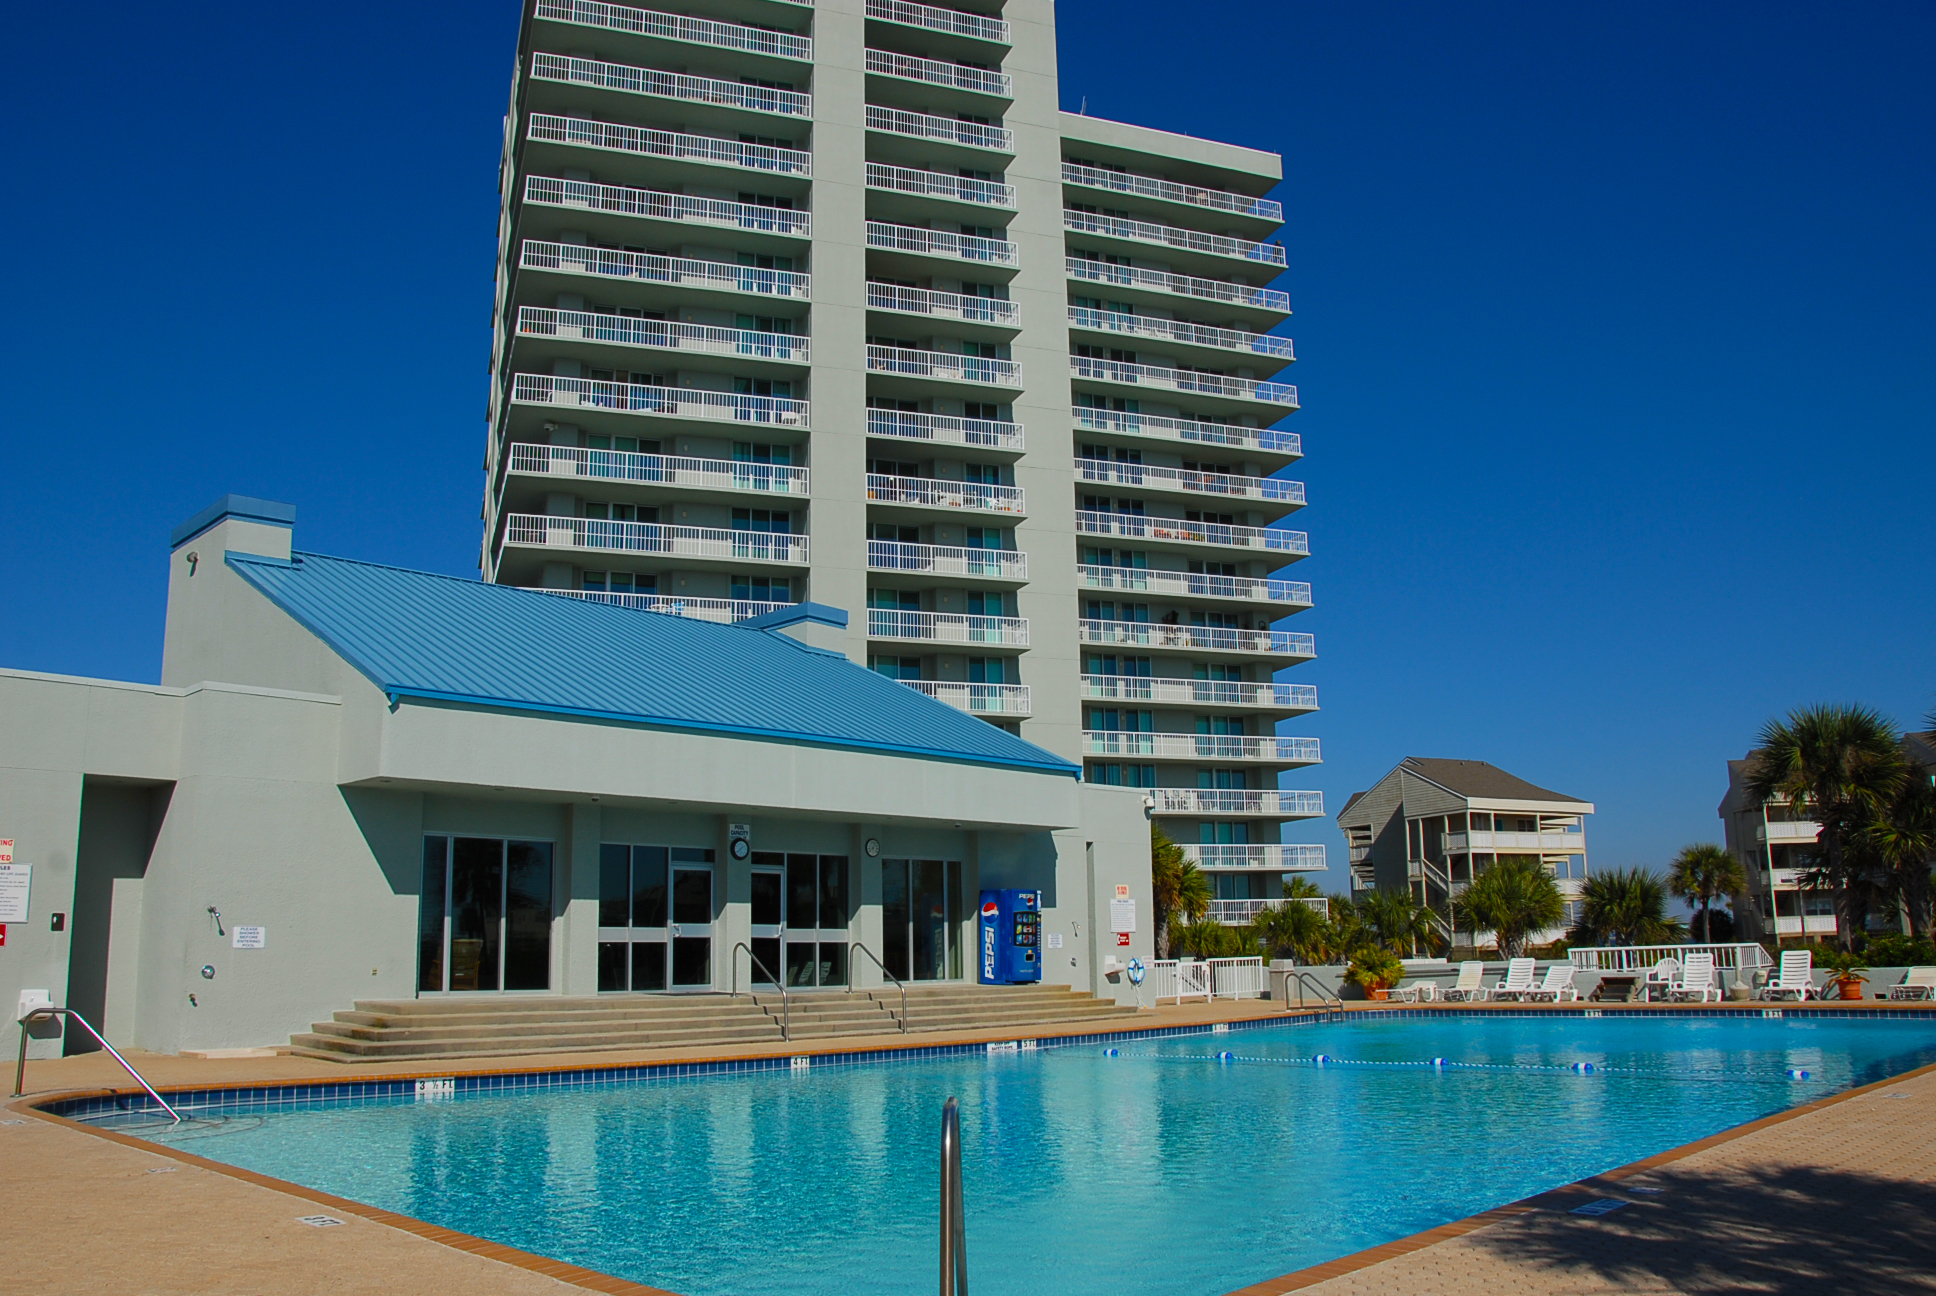 Tristan Towers #5B Condo rental in Tristan Towers ~ Pensacola Beach Condo Rentals by BeachGuide in Pensacola Beach Florida - #43